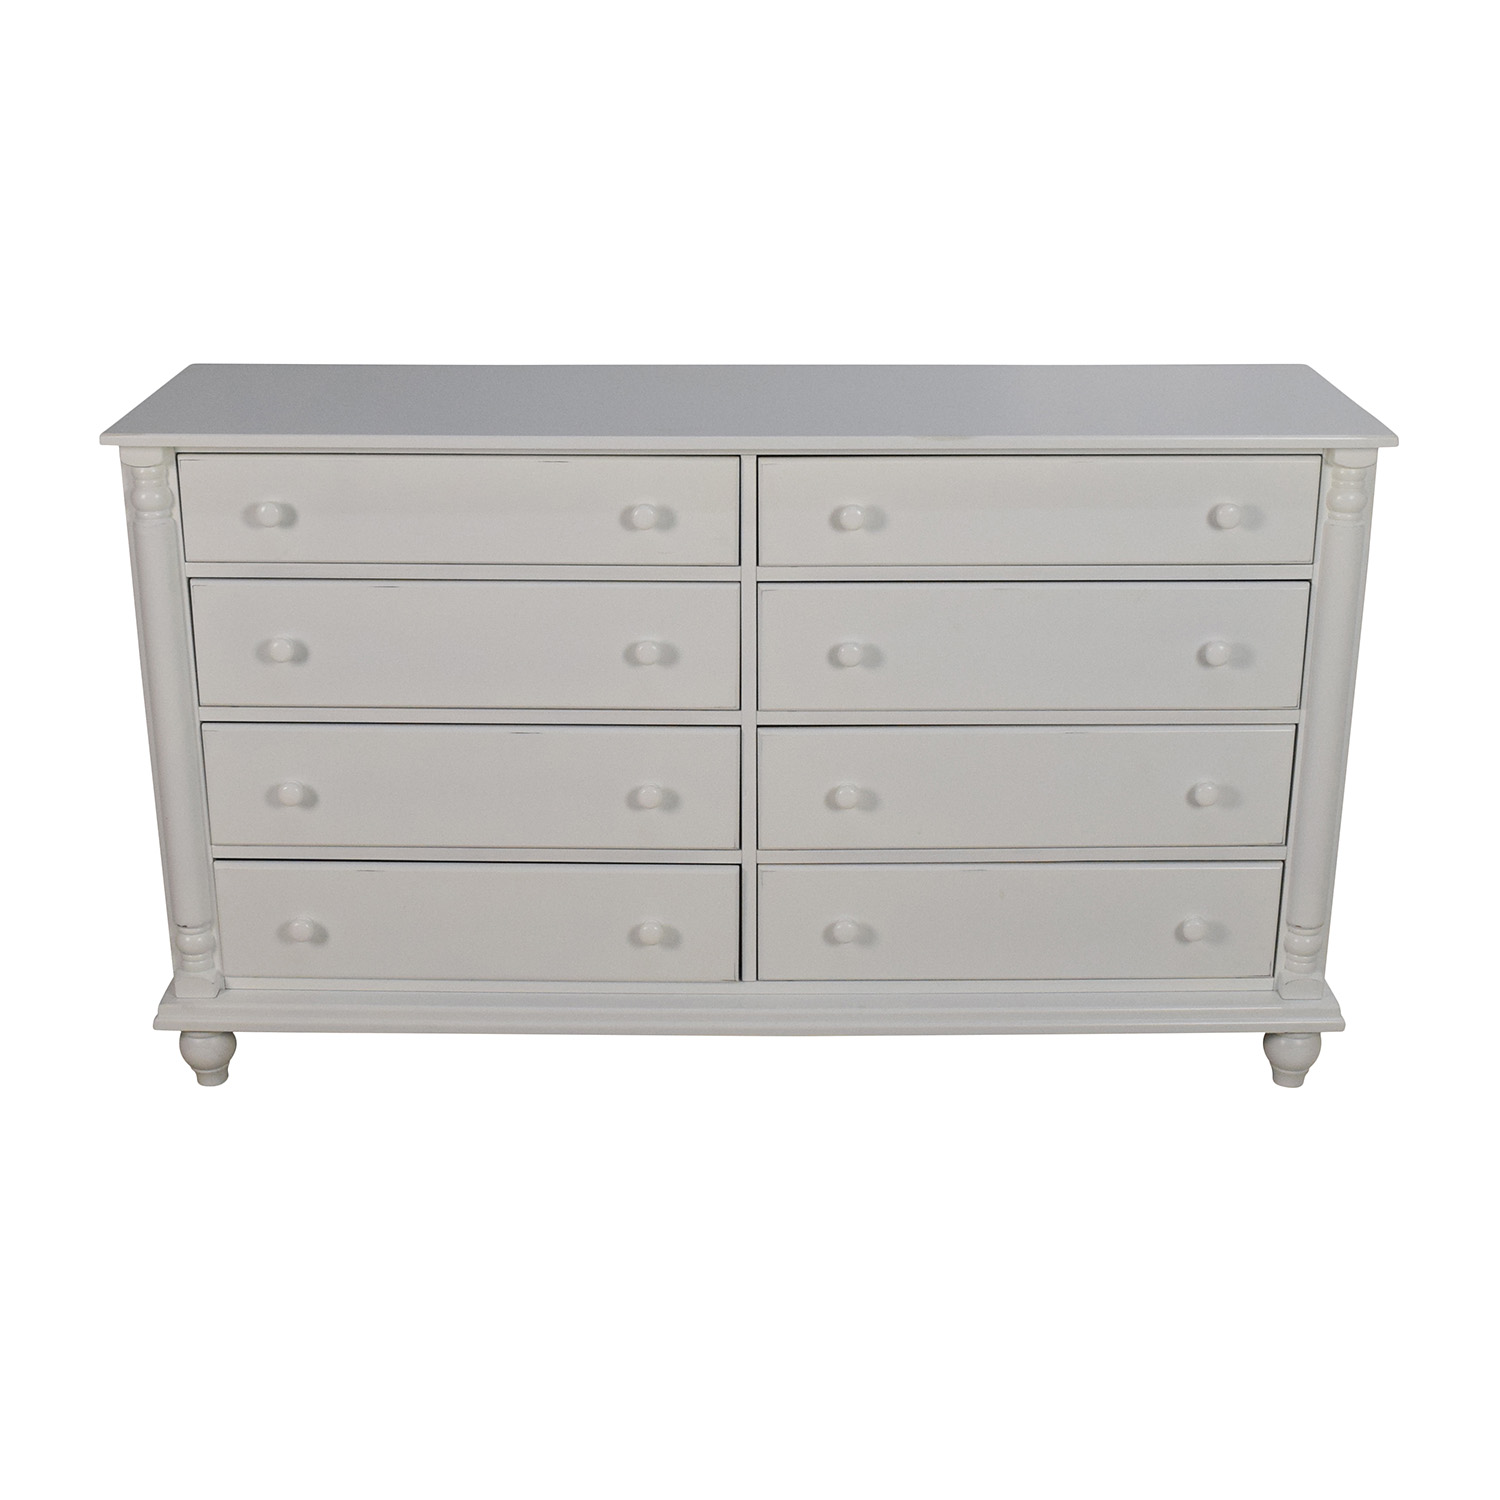 Coaster Furniture Coaster Furniture Kayla White Dresser for sale